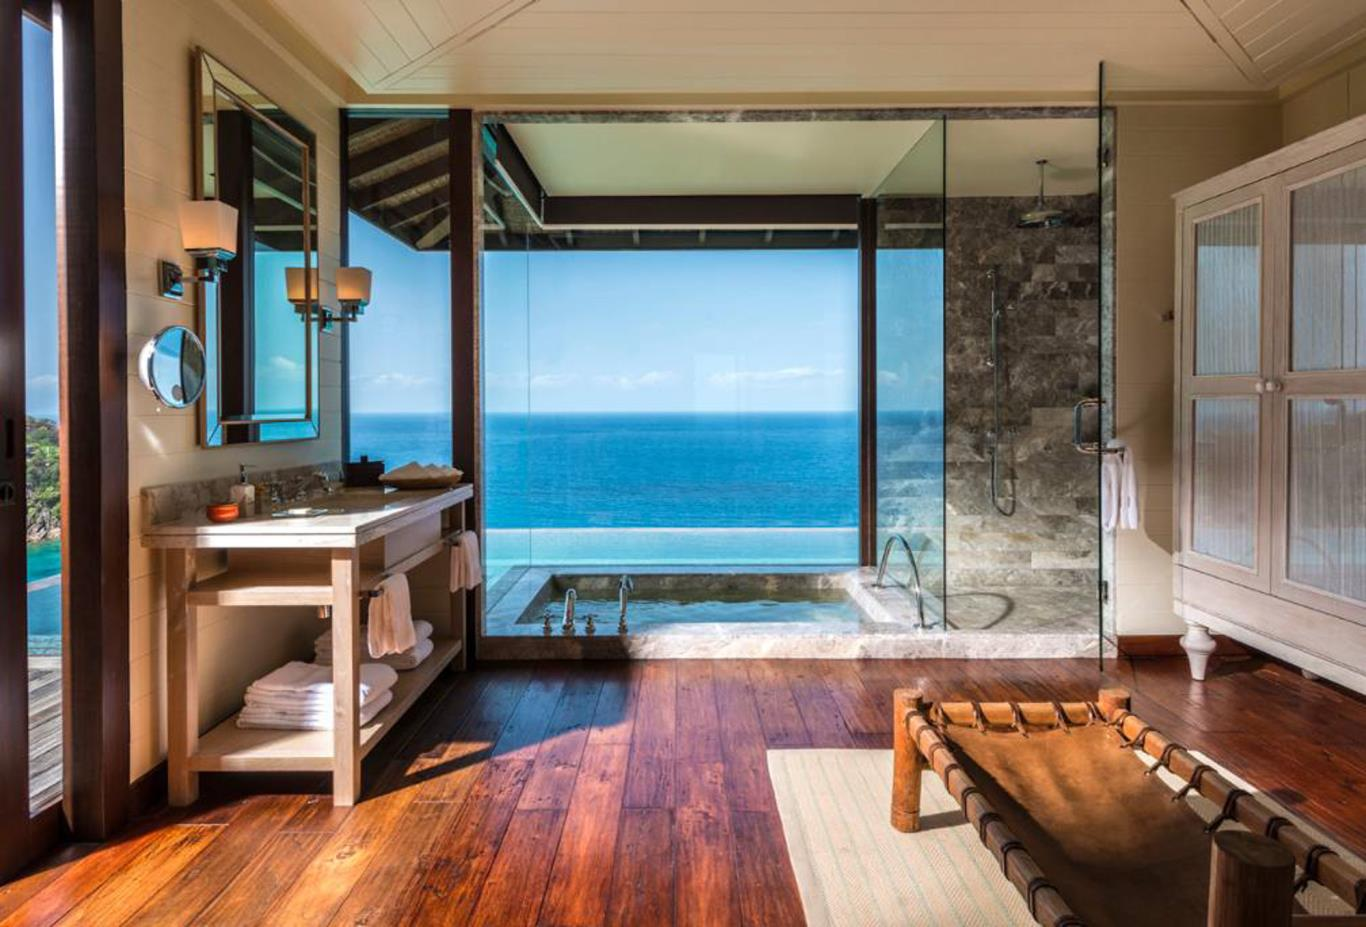 Serenity-villa bathroom